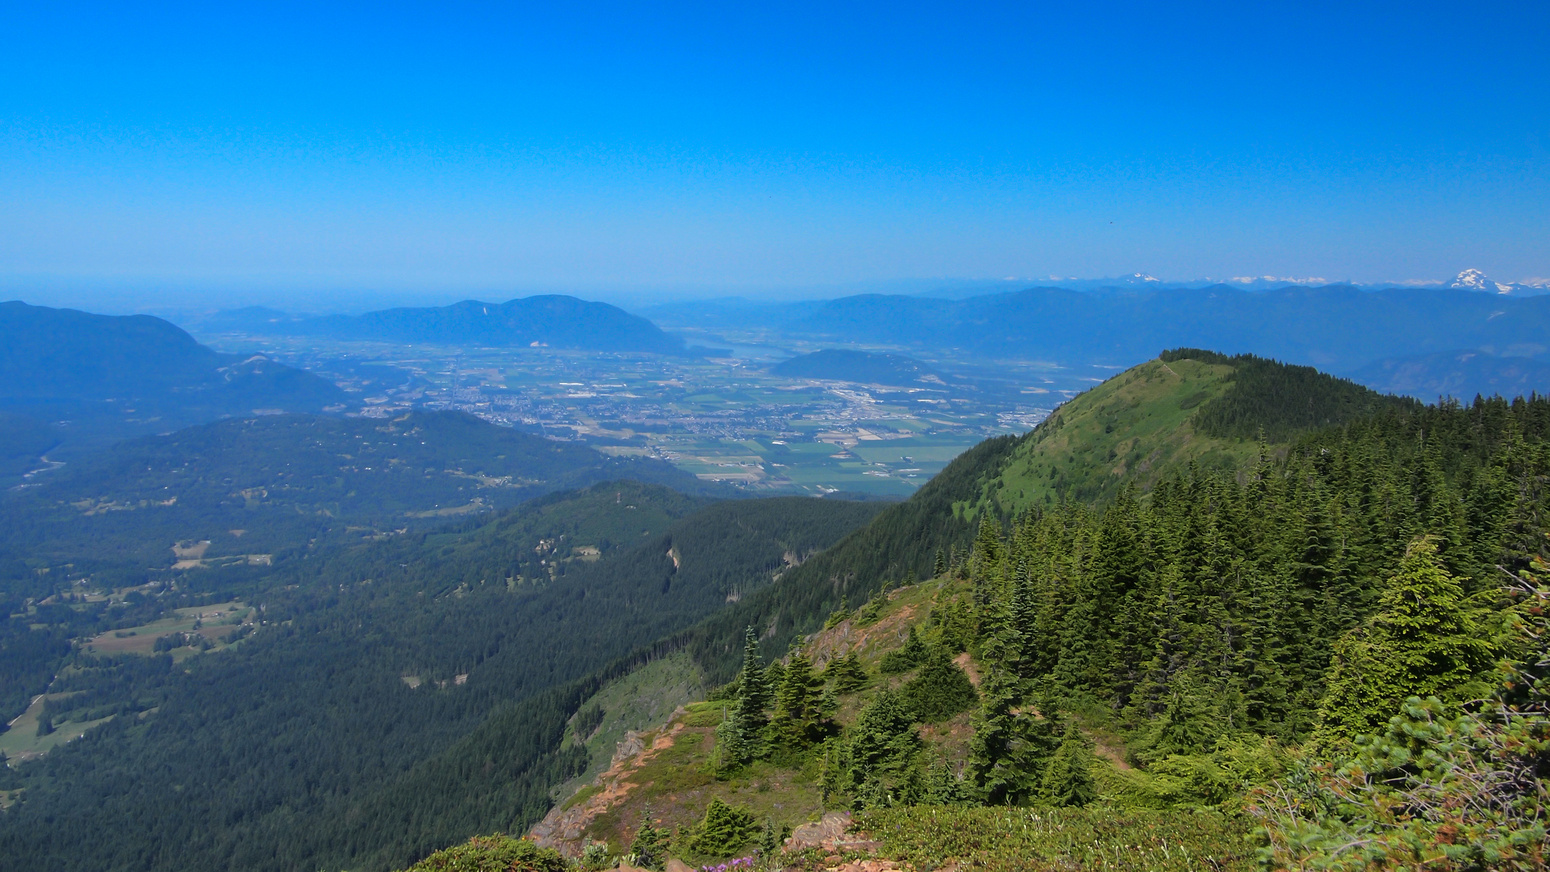 Looking back at Elk Mountain from near the middle bump. Chilliwack in the background.